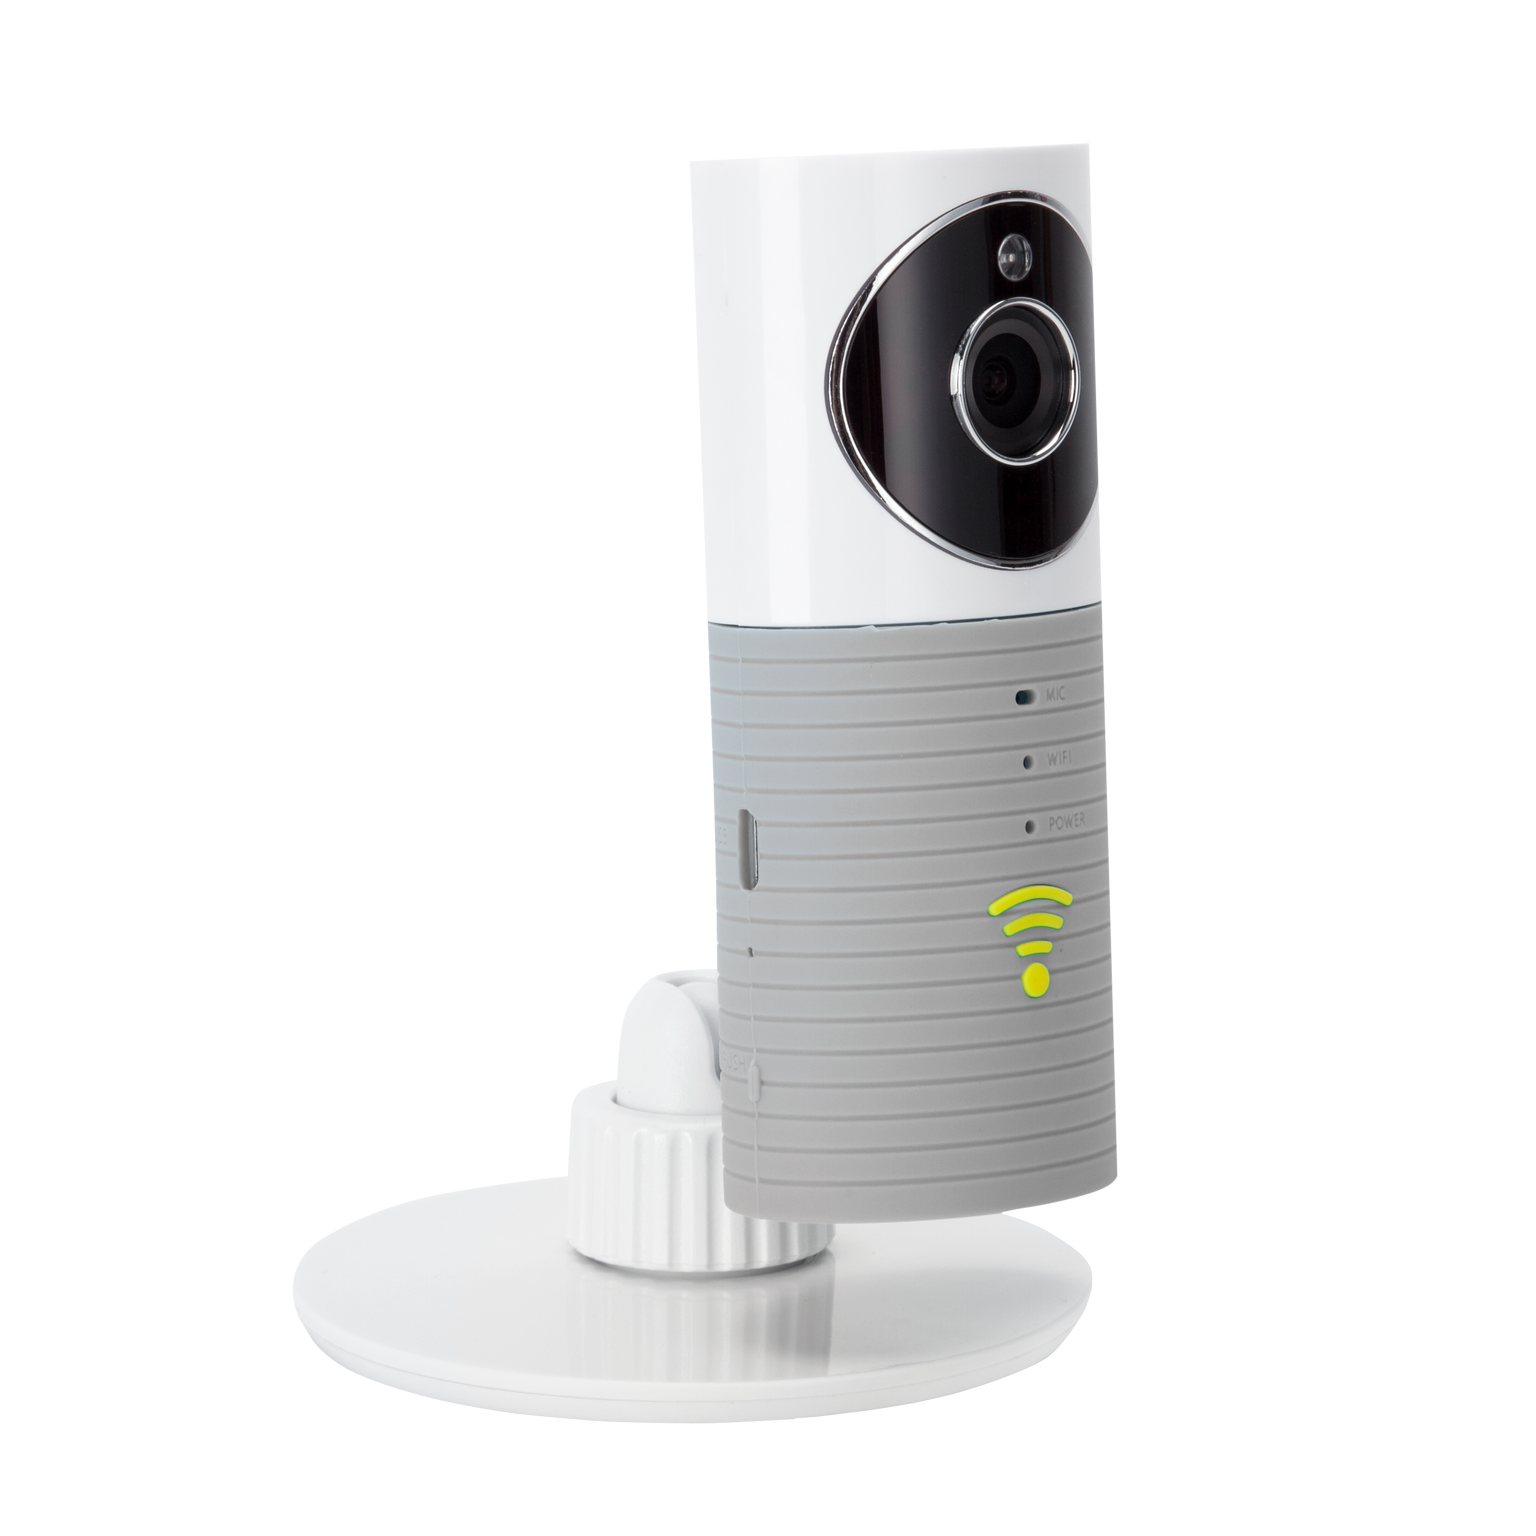 Wireless Smart IP Camera Clever Dog Cleverdog WiFi Monitor Security Night Vision